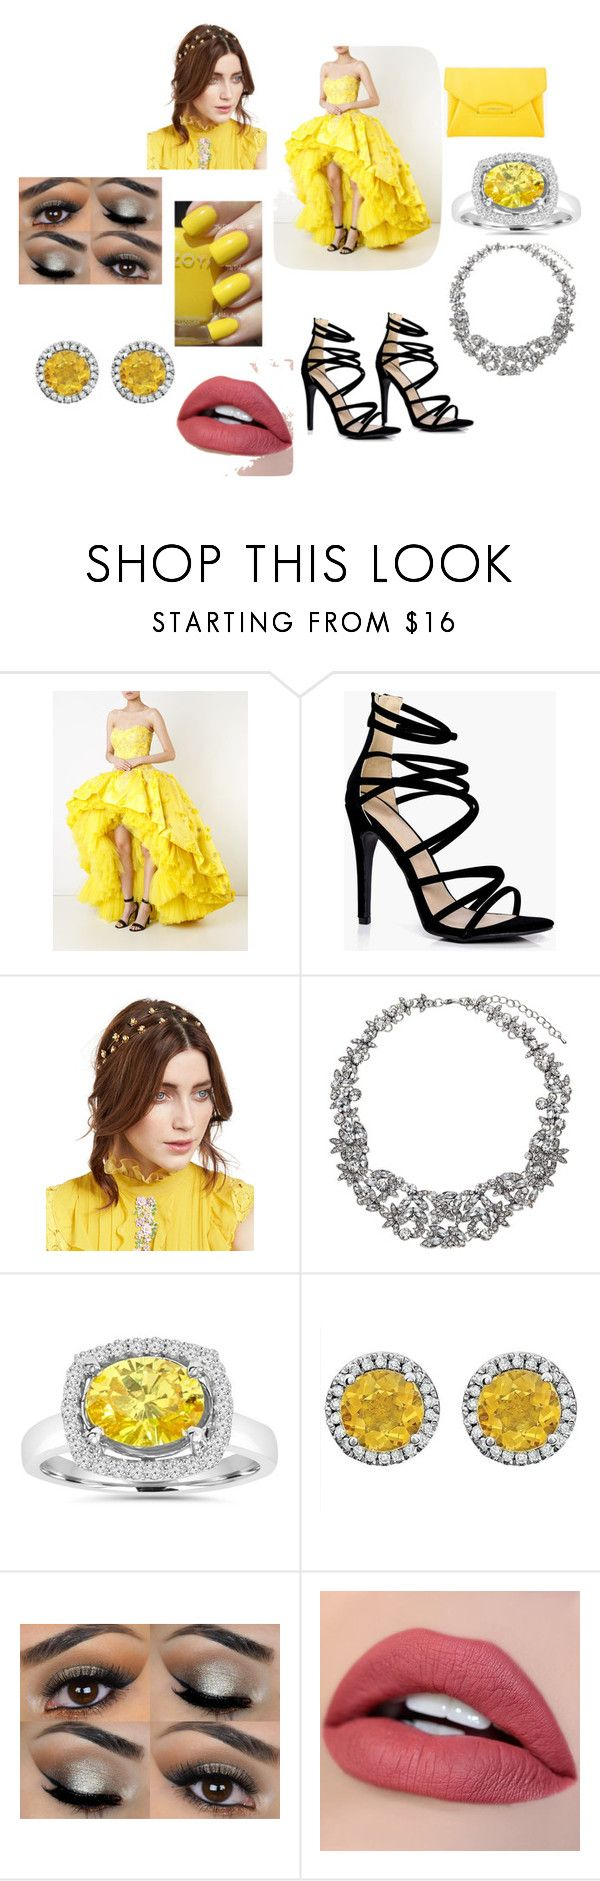 """Sophisticated Sunshine"" by outfit-creator ❤ liked on Polyvore featuring Mikael D, Boohoo, Givenchy, Jennifer Behr, John Lewis and Zoya"